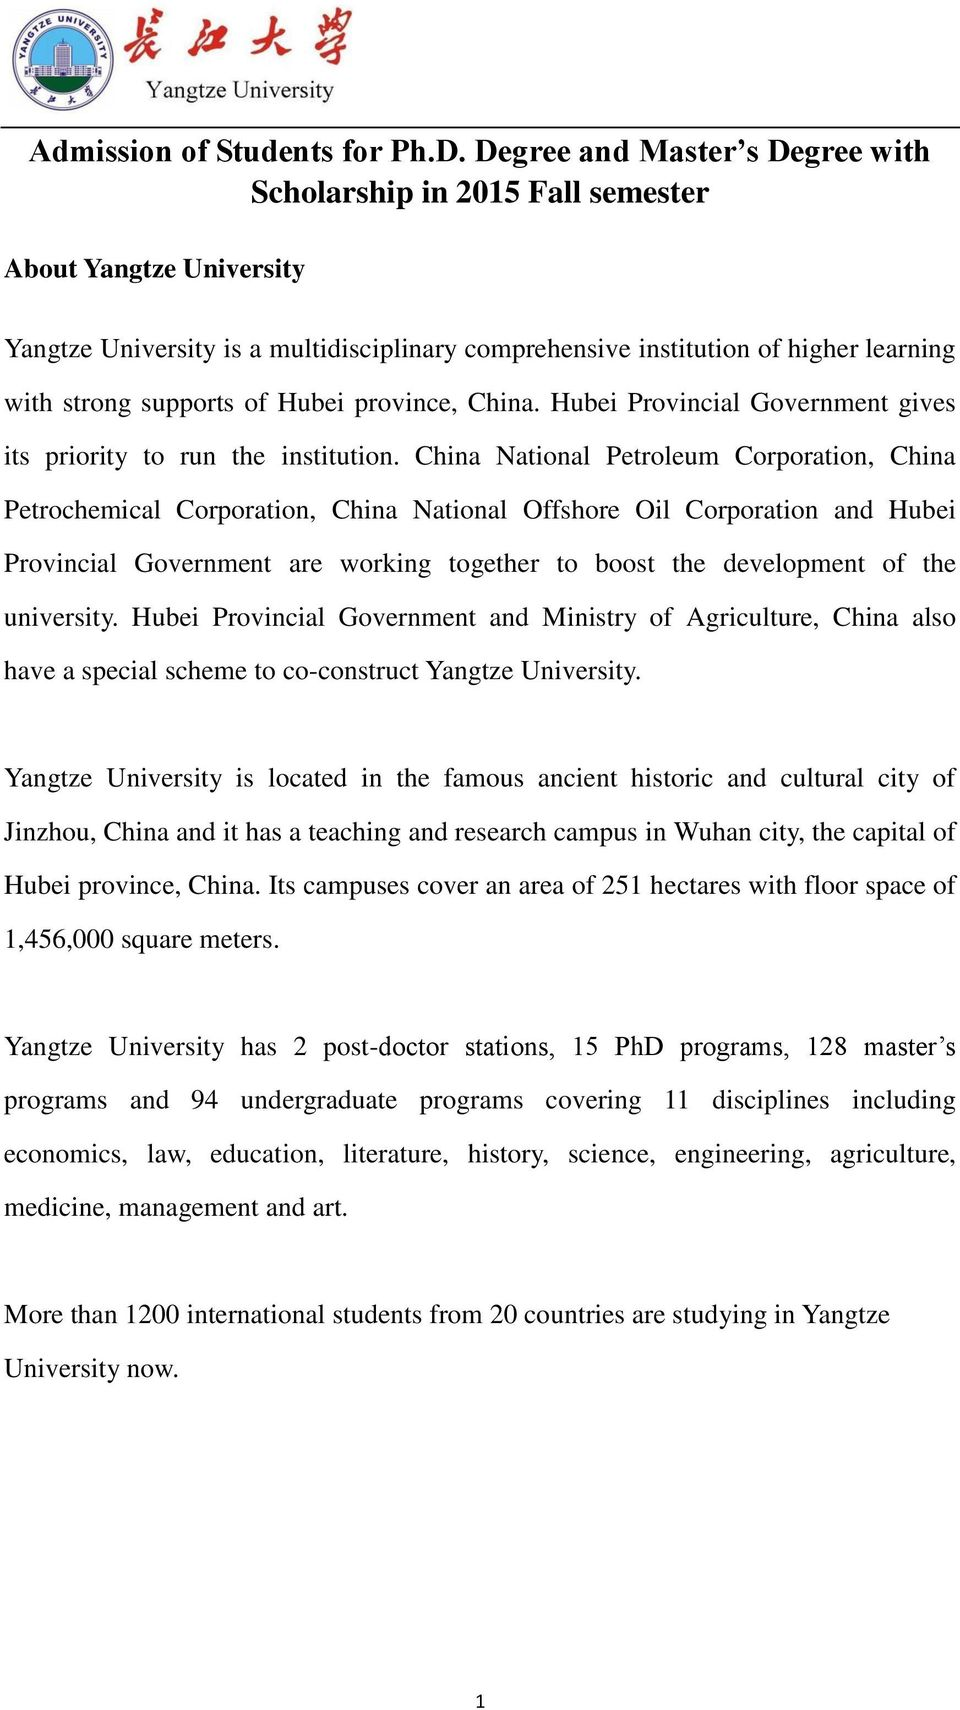 of Hubei province, China. Hubei Provincial Government gives its priority to run the institution.